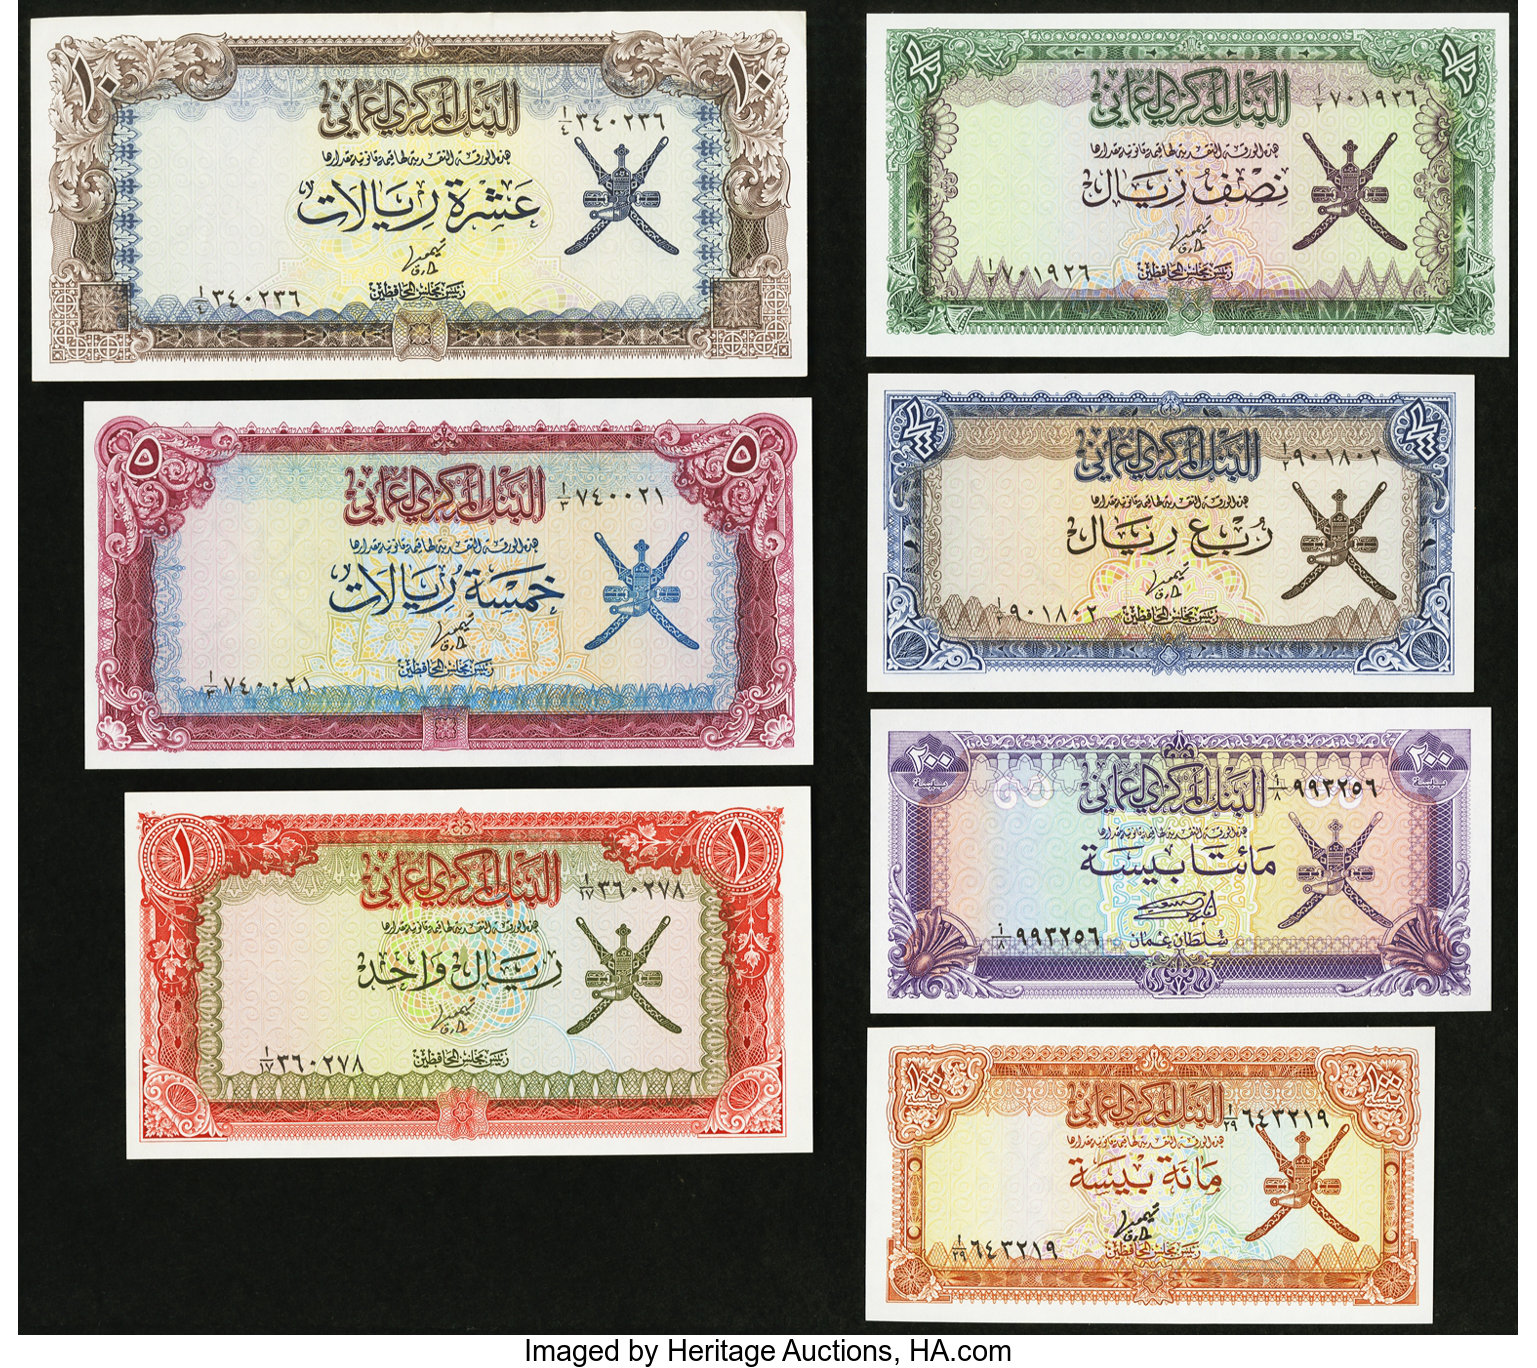 Oman Central Bank Of Oman Denomination Set 100 Baisa 10 Rials Nd Lot 27922 Heritage Auctions